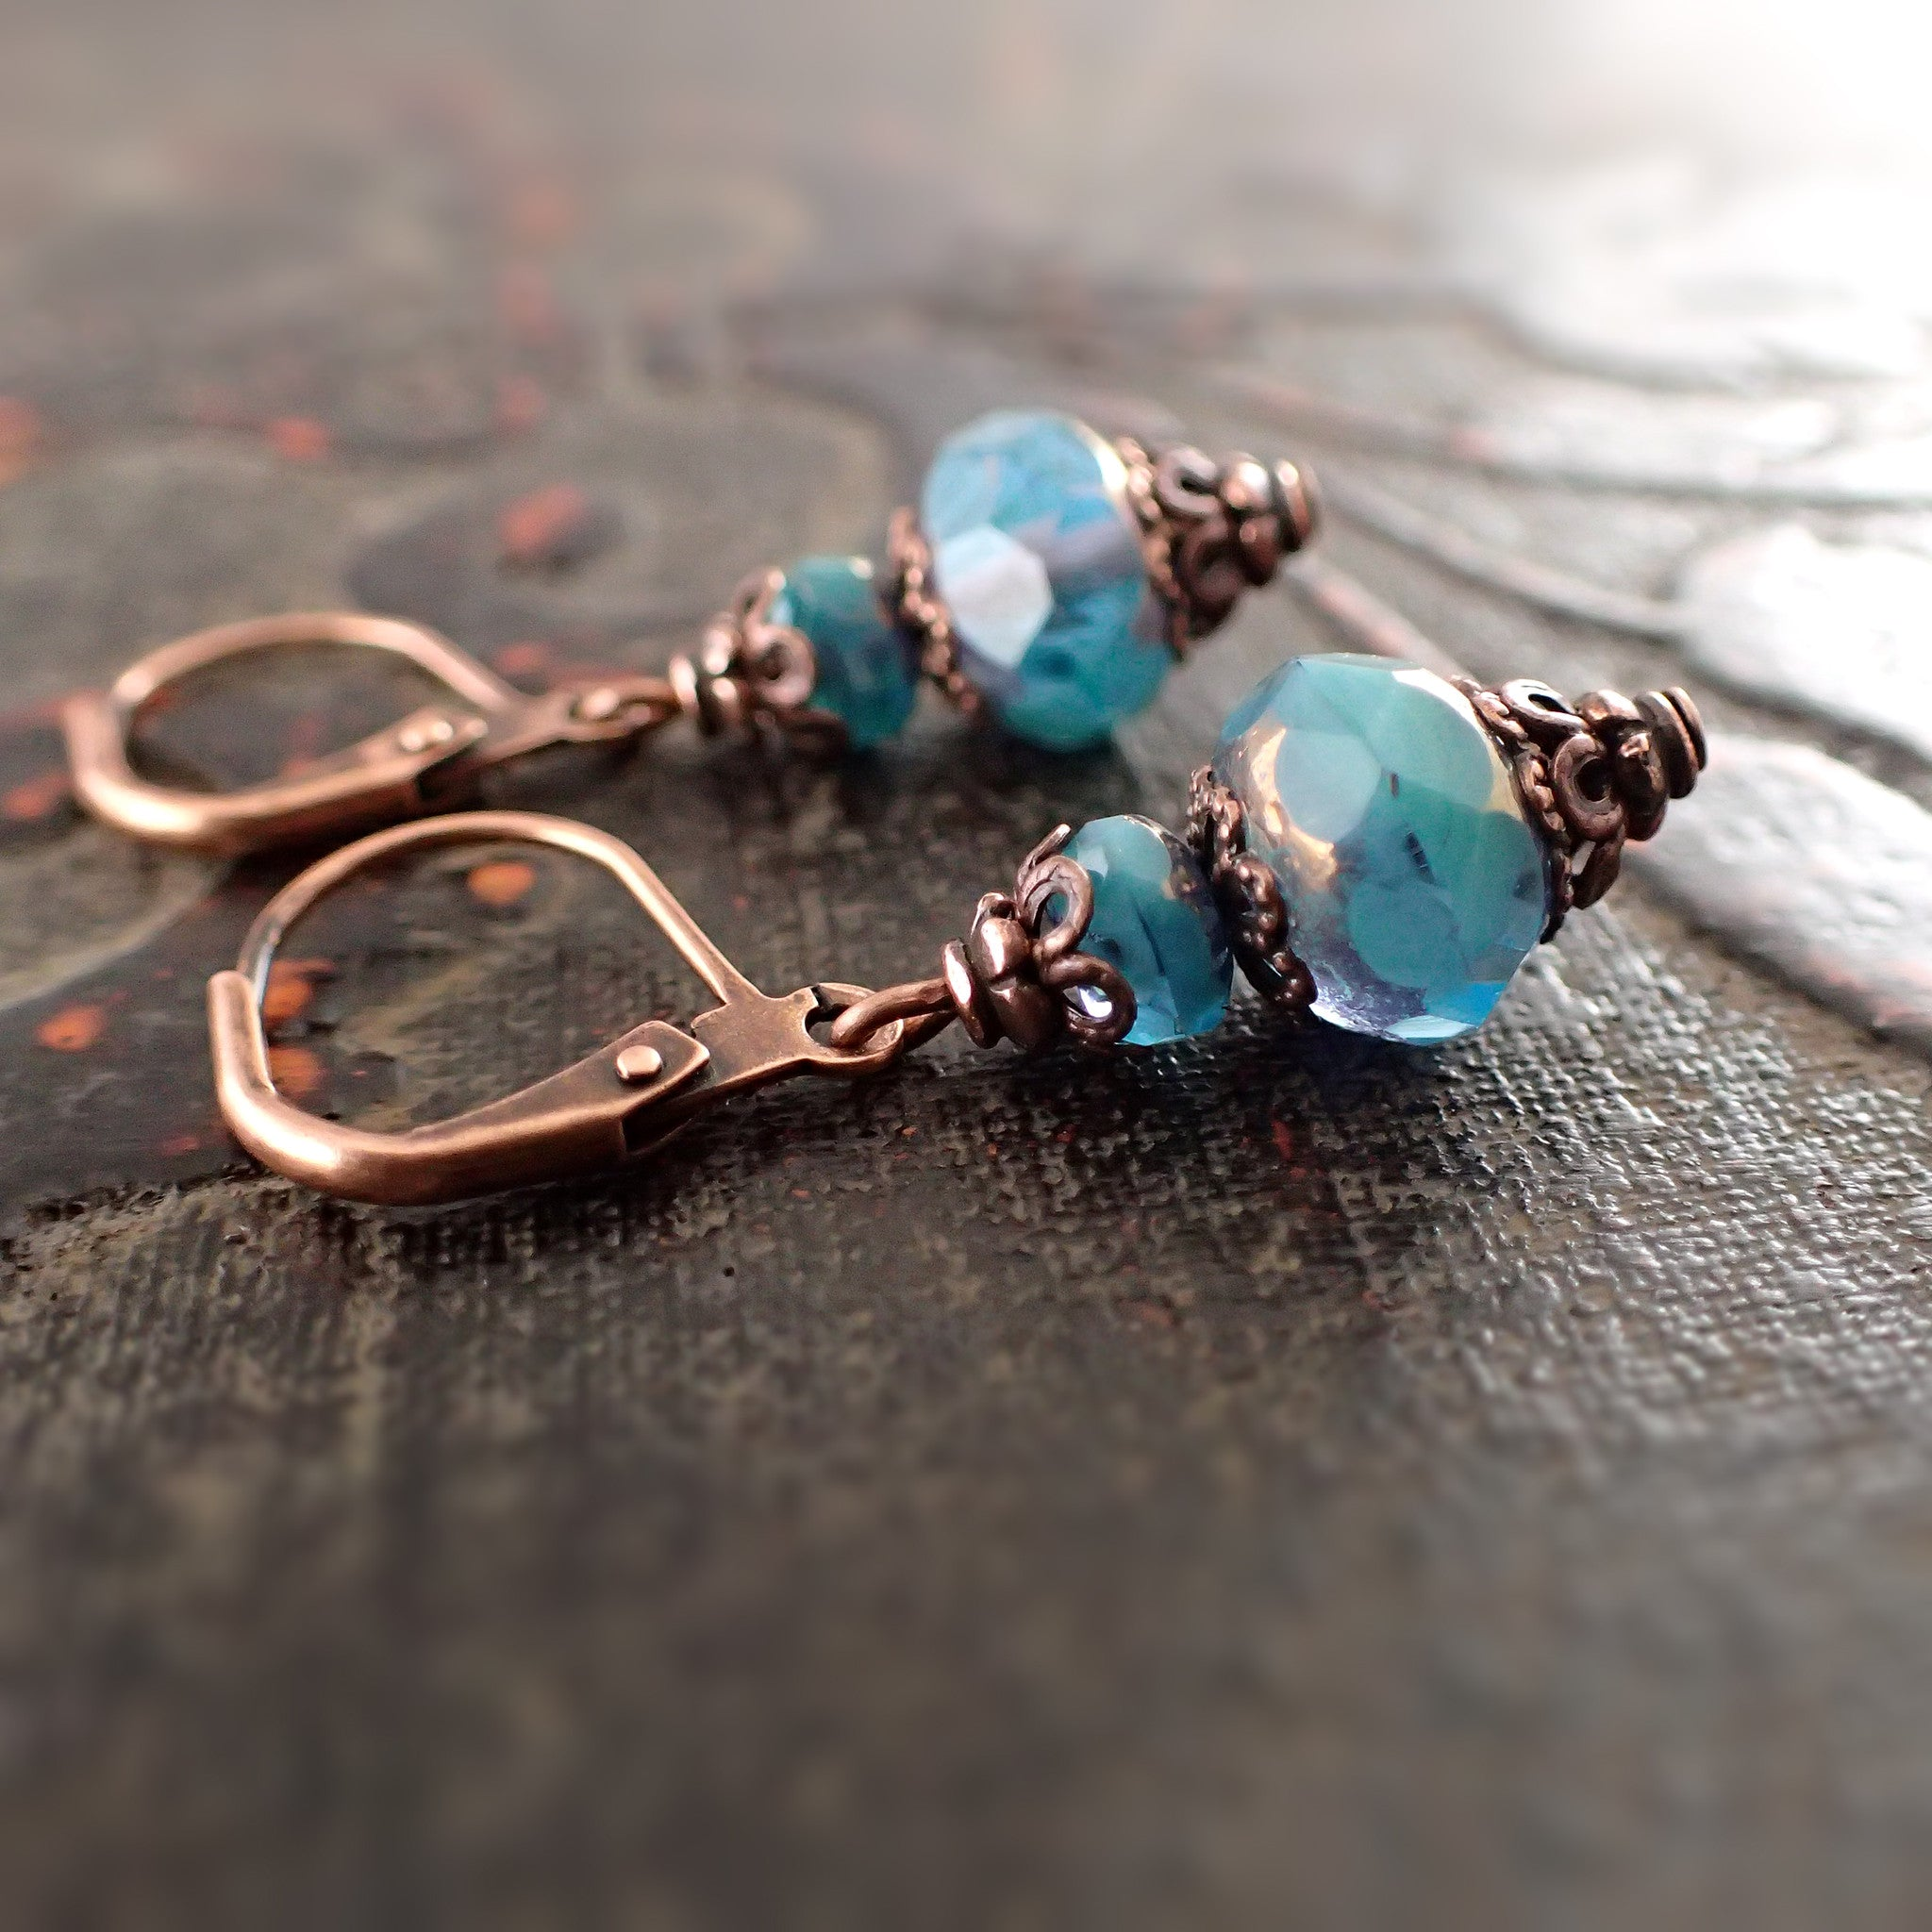 Swirly Turquoise and Copper Earrings